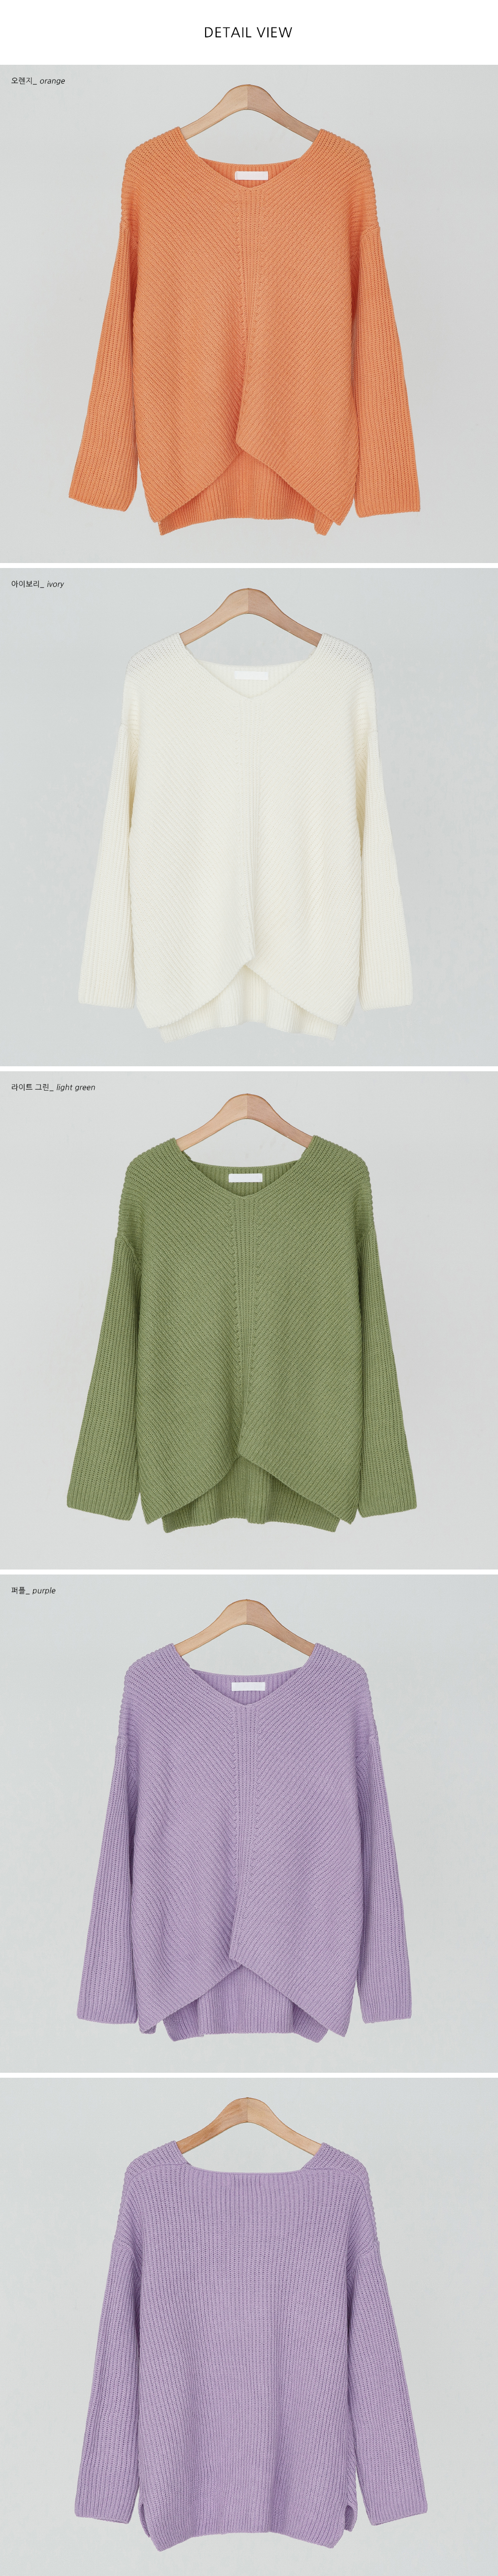 Unbalanced V-neck Goal knit-knit